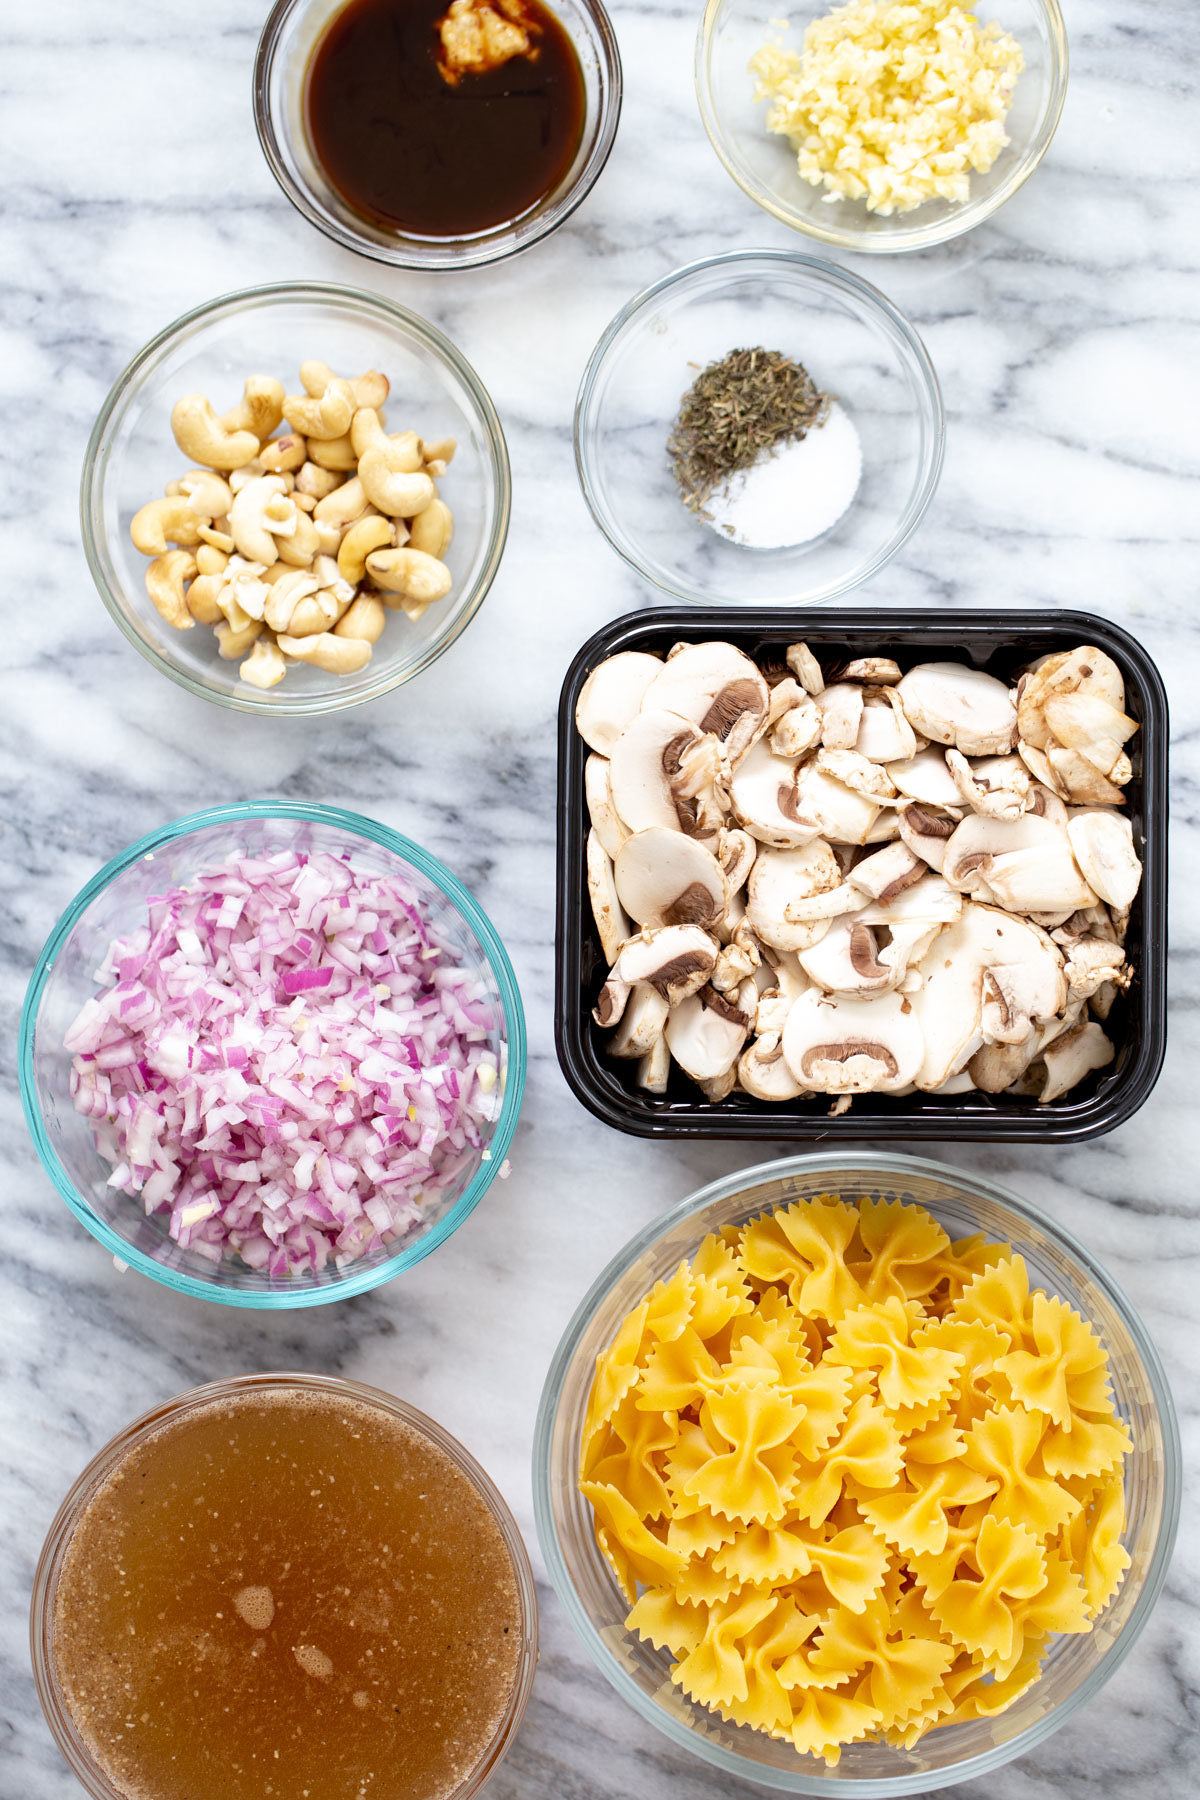 ingredients needed for making vegan stroganoff